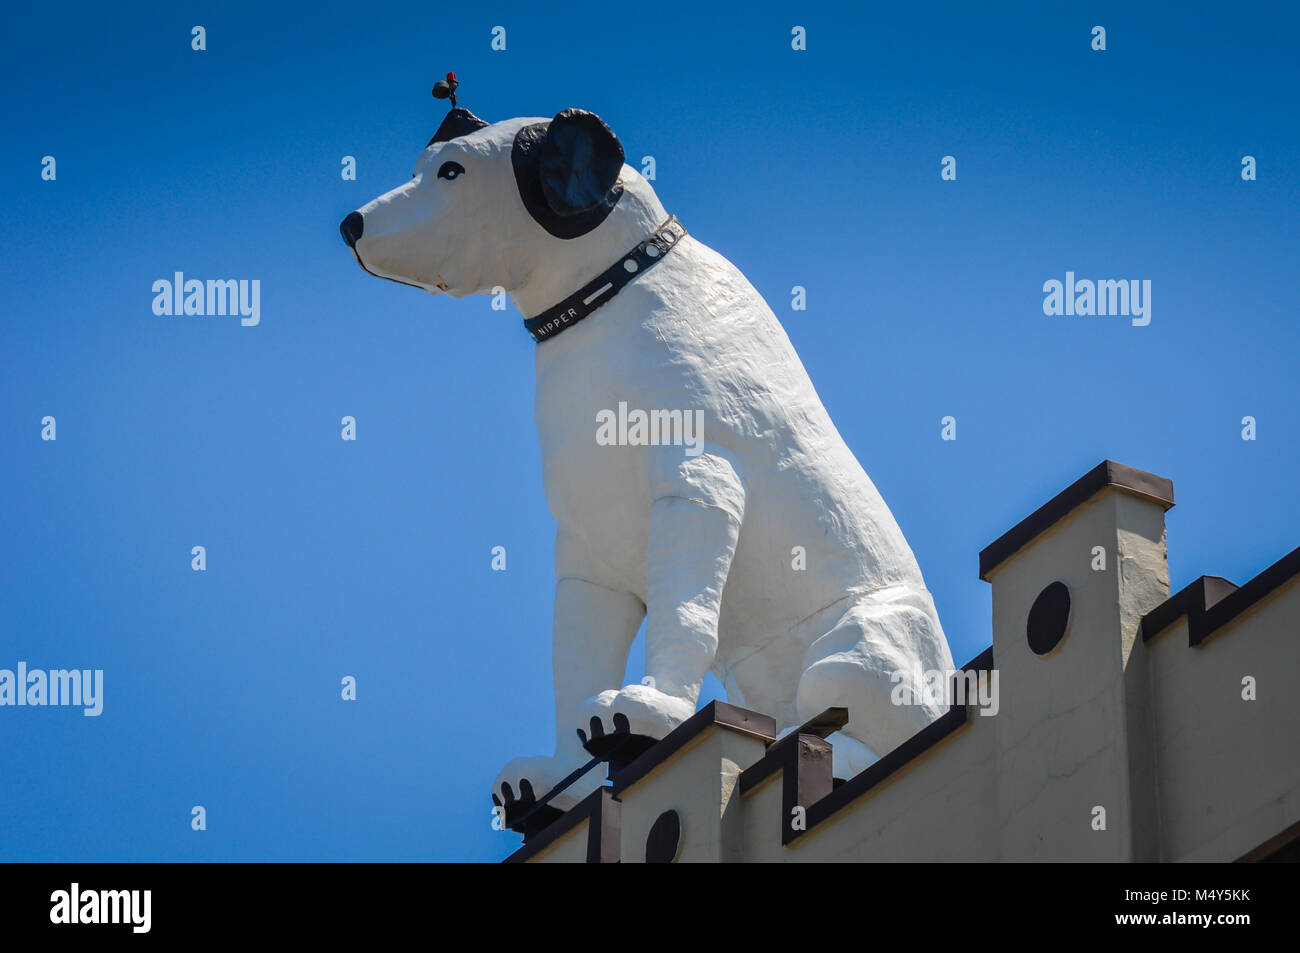 White dog statue, likeness of RCA mascot Nipper, perched on top of a building with a bright blue sky background, - Stock Image